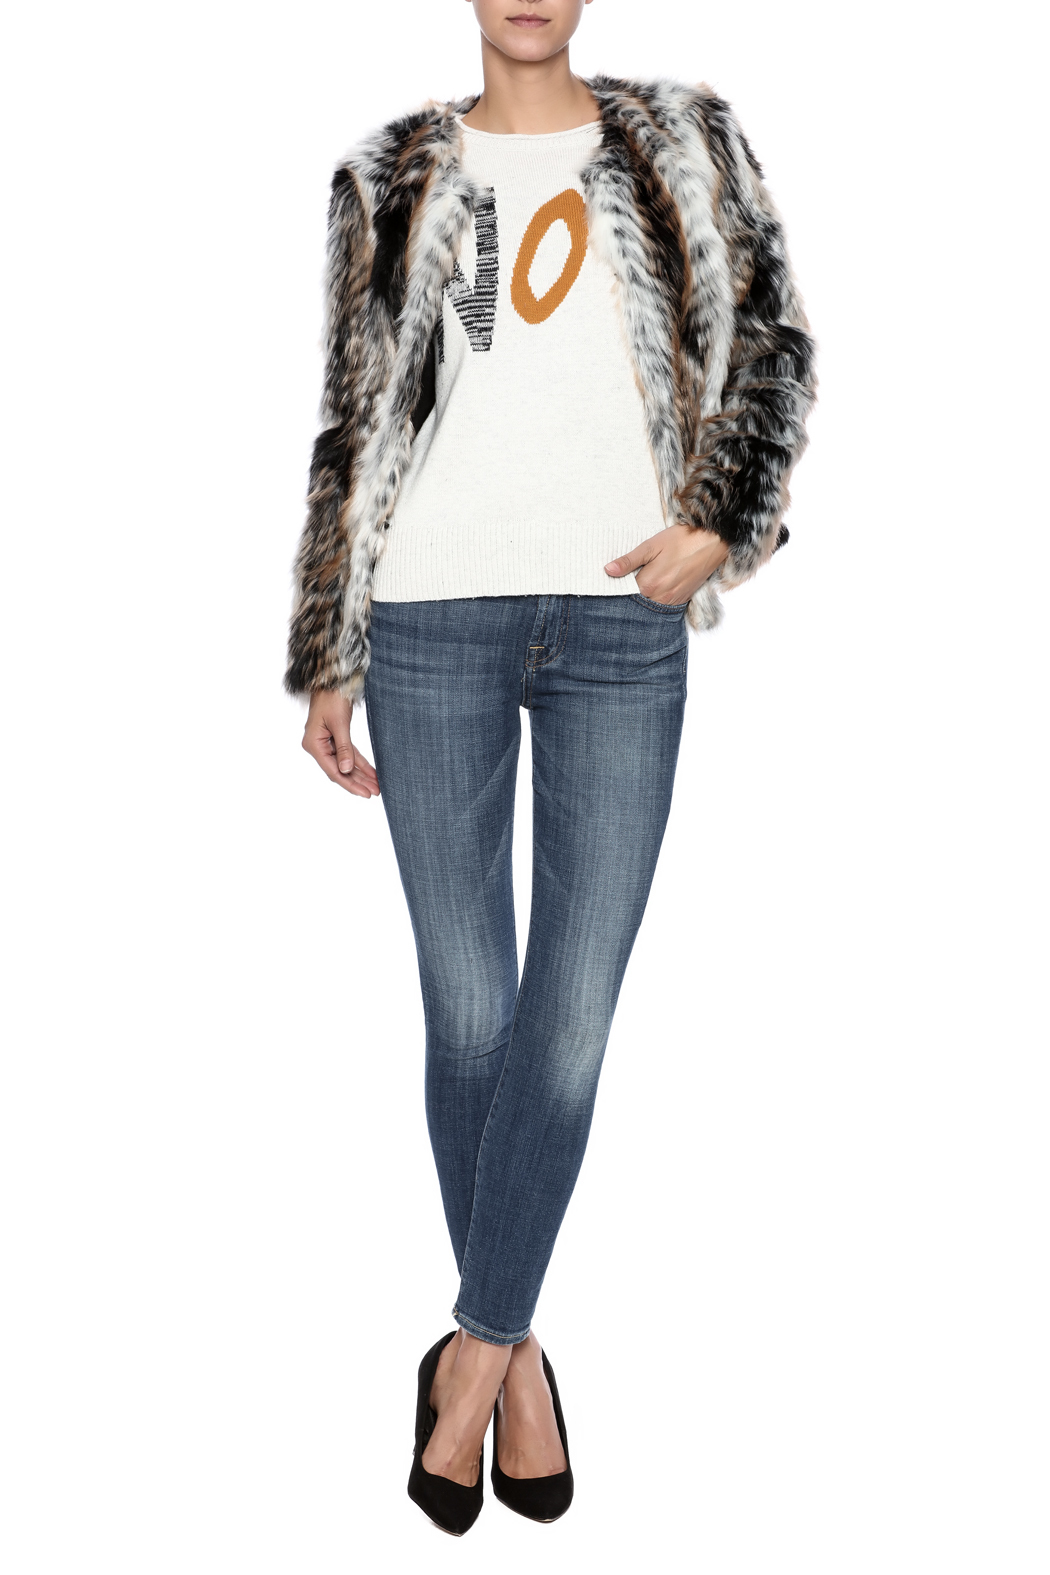 rebecca elliott Tan Faux-Fur Jacket - Front Full Image